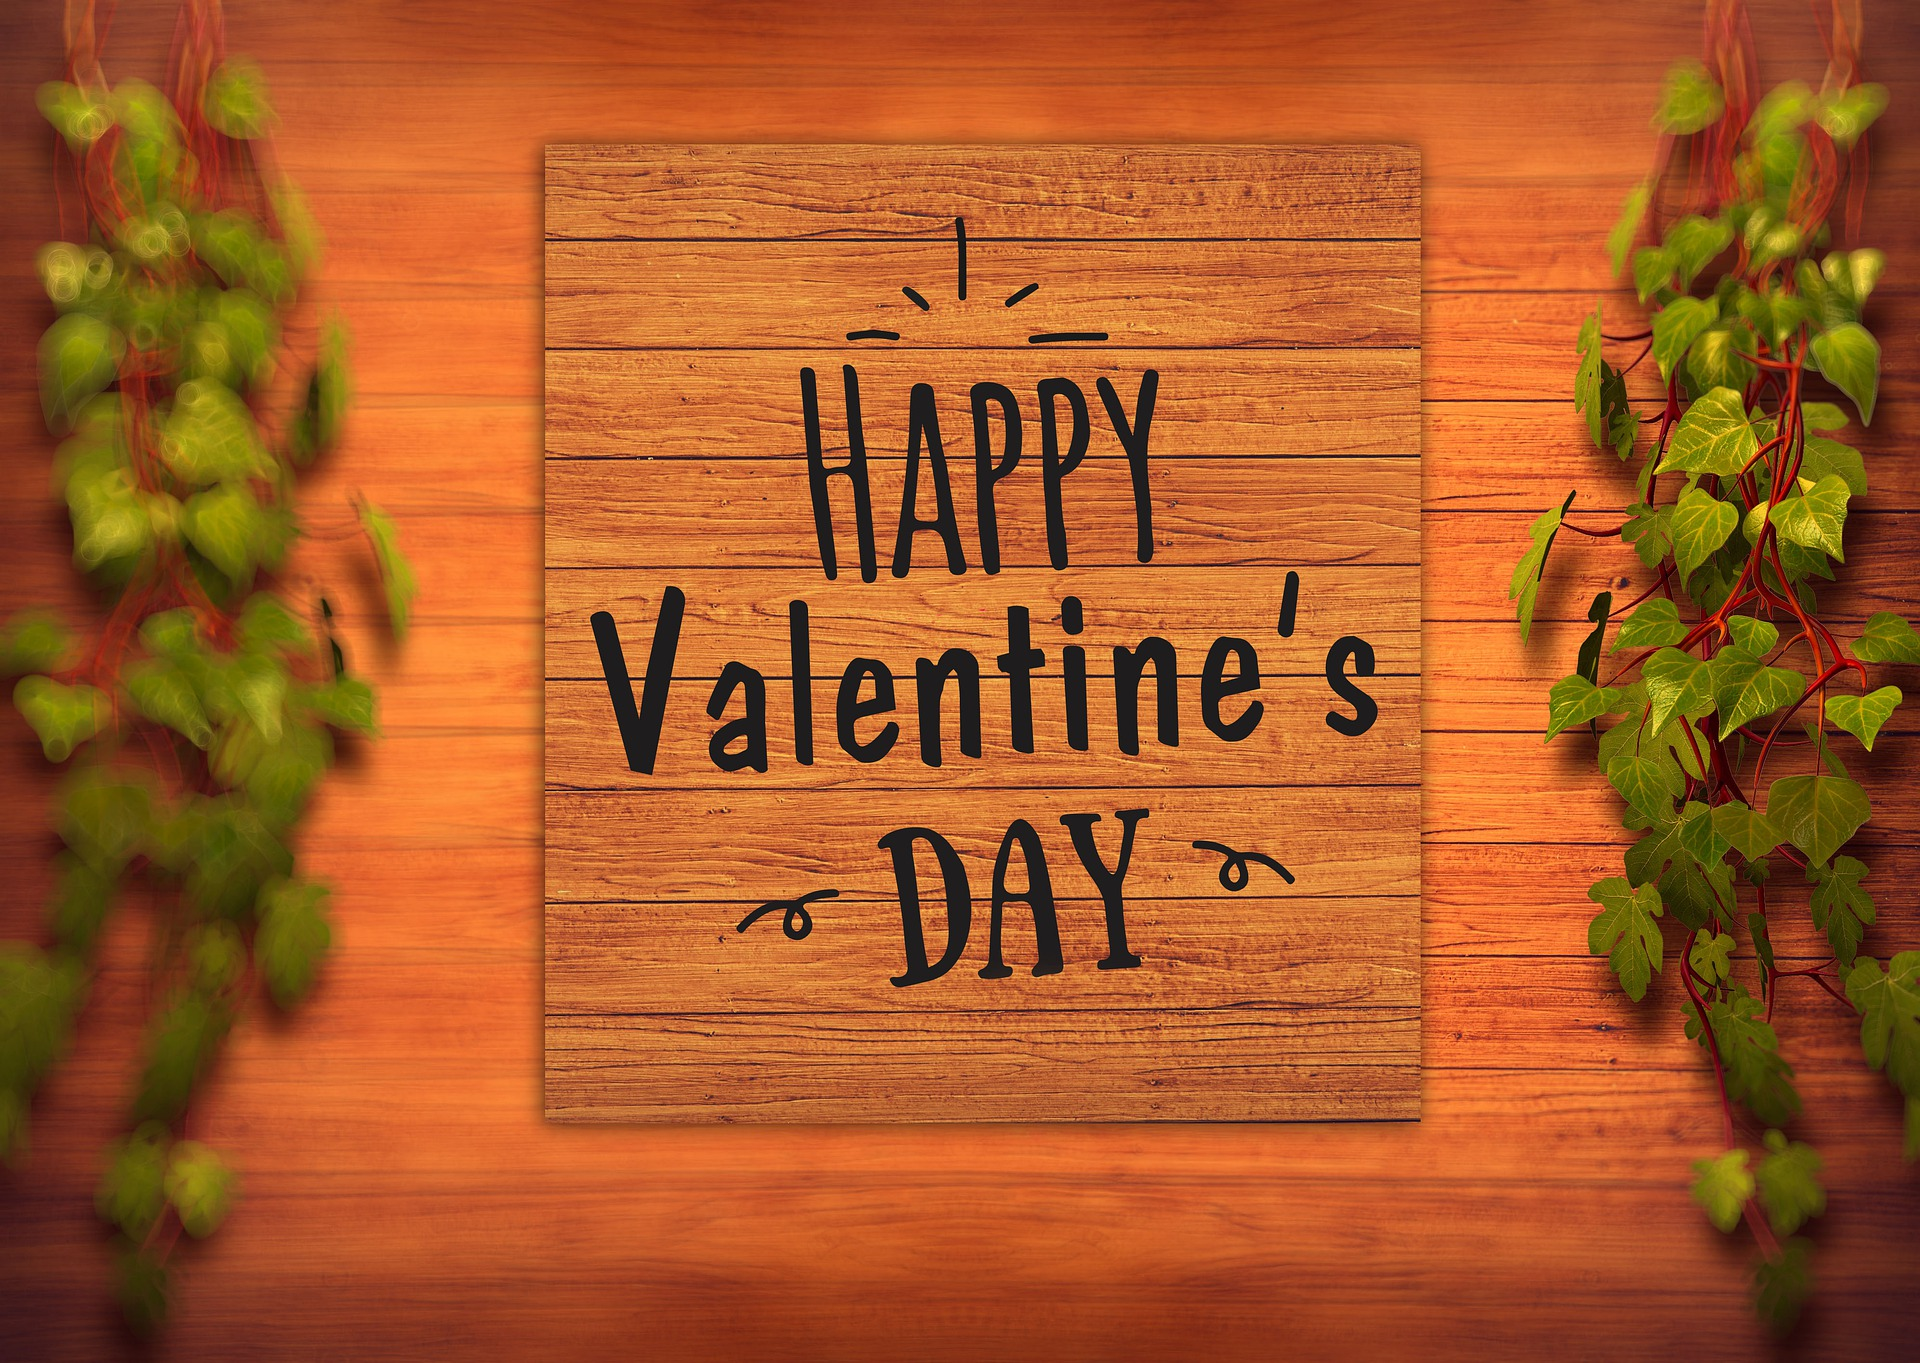 happy-valentines-day-4789177_1920 (2)